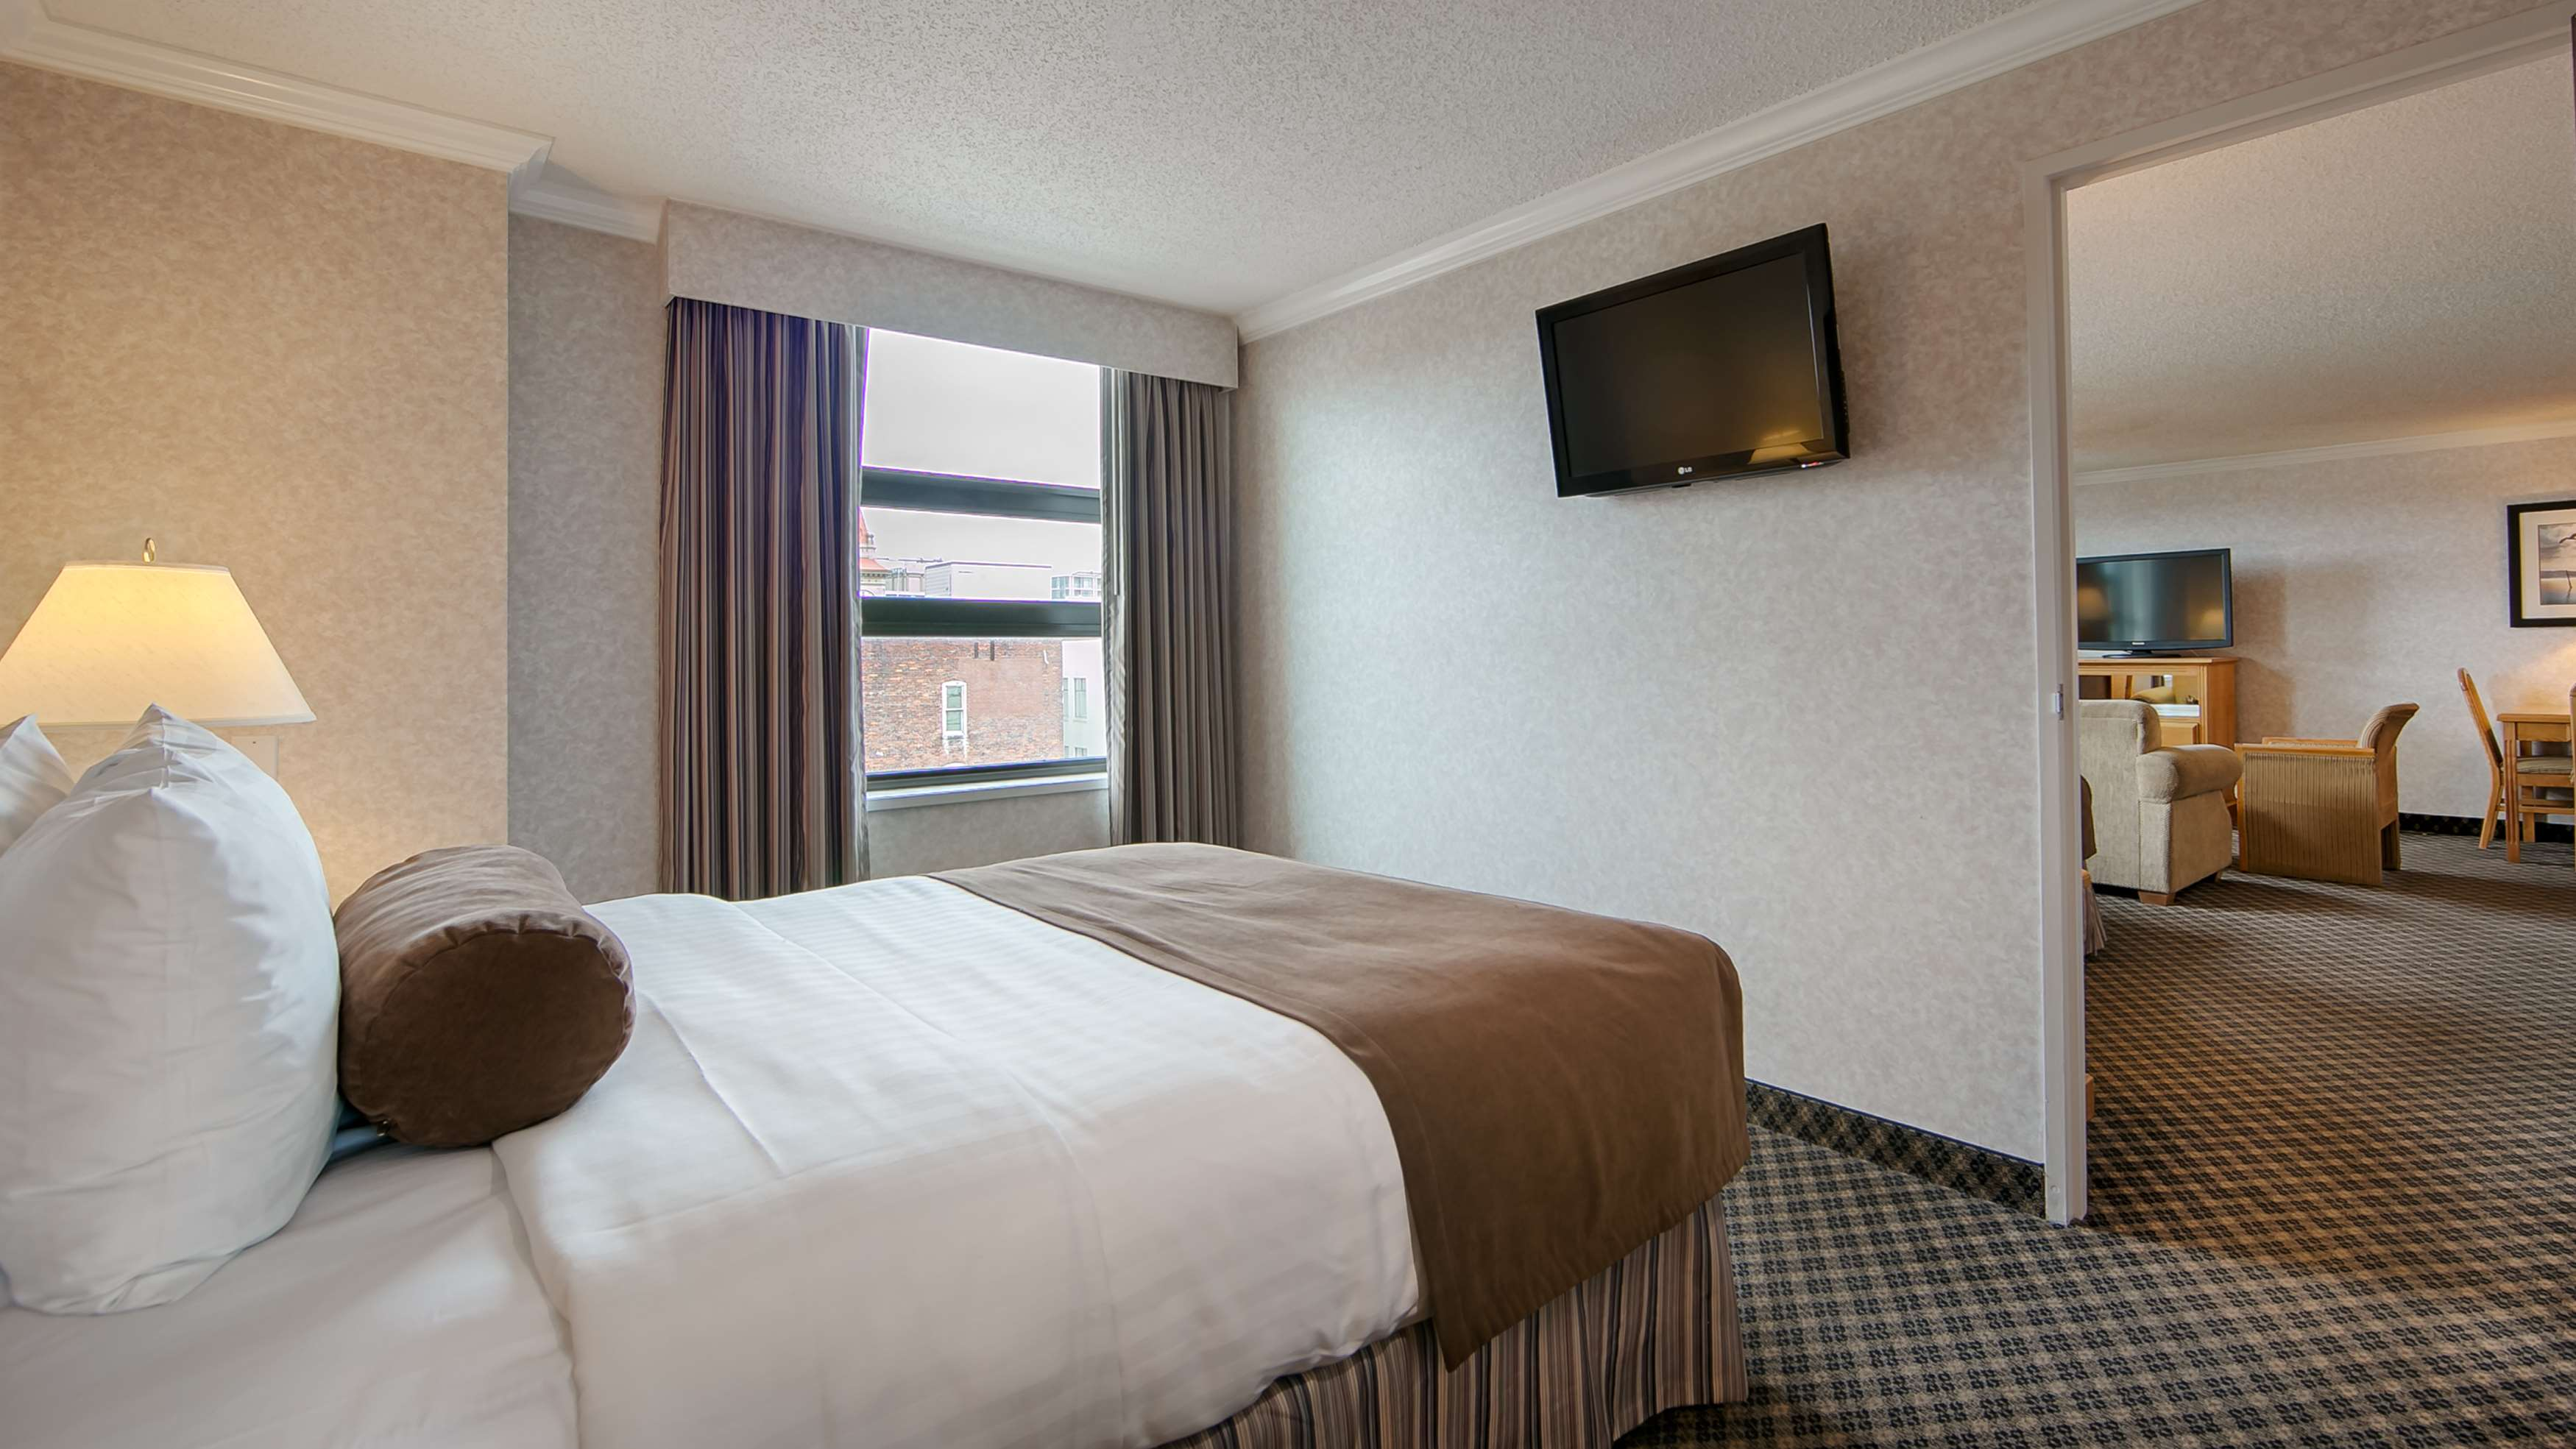 Best Western Plus Carlton Plaza Hotel in Victoria: Family Suite with Two Beds